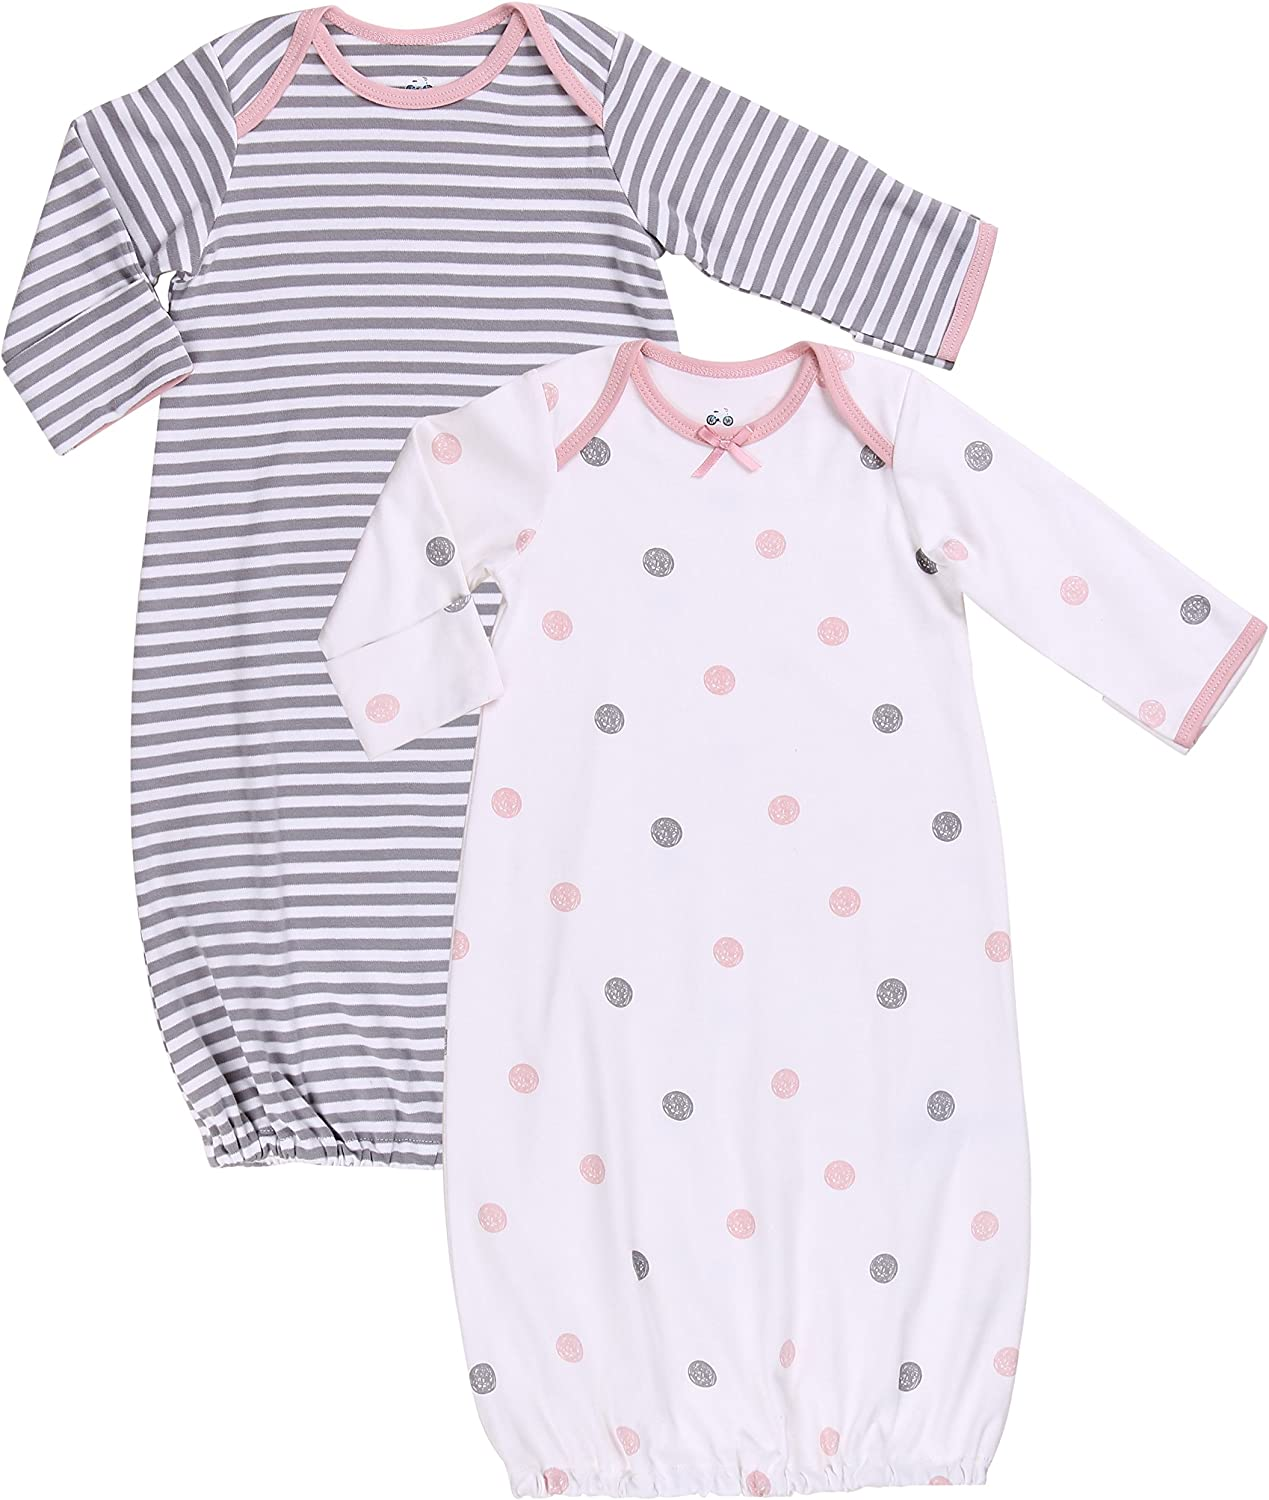 MARQUEBABY Babys Summer Sleep Gown Soft Cotton Lightweight Mittens Sleeper